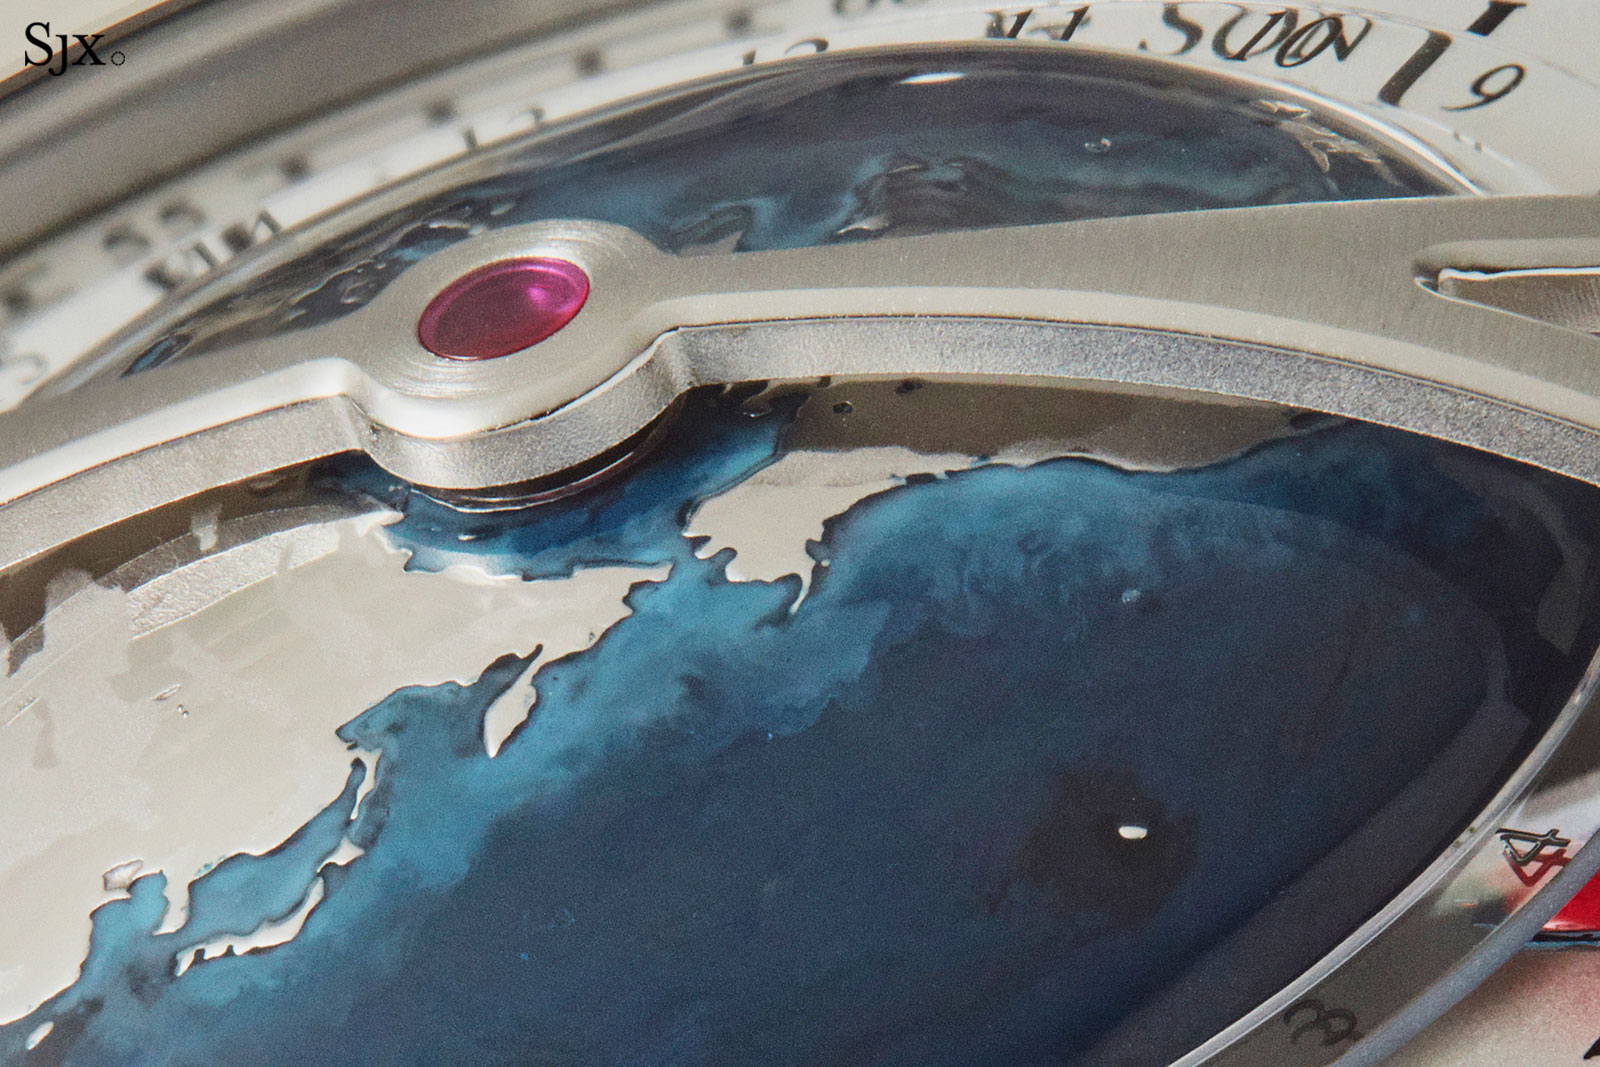 Arnold son globetrotter world time 1